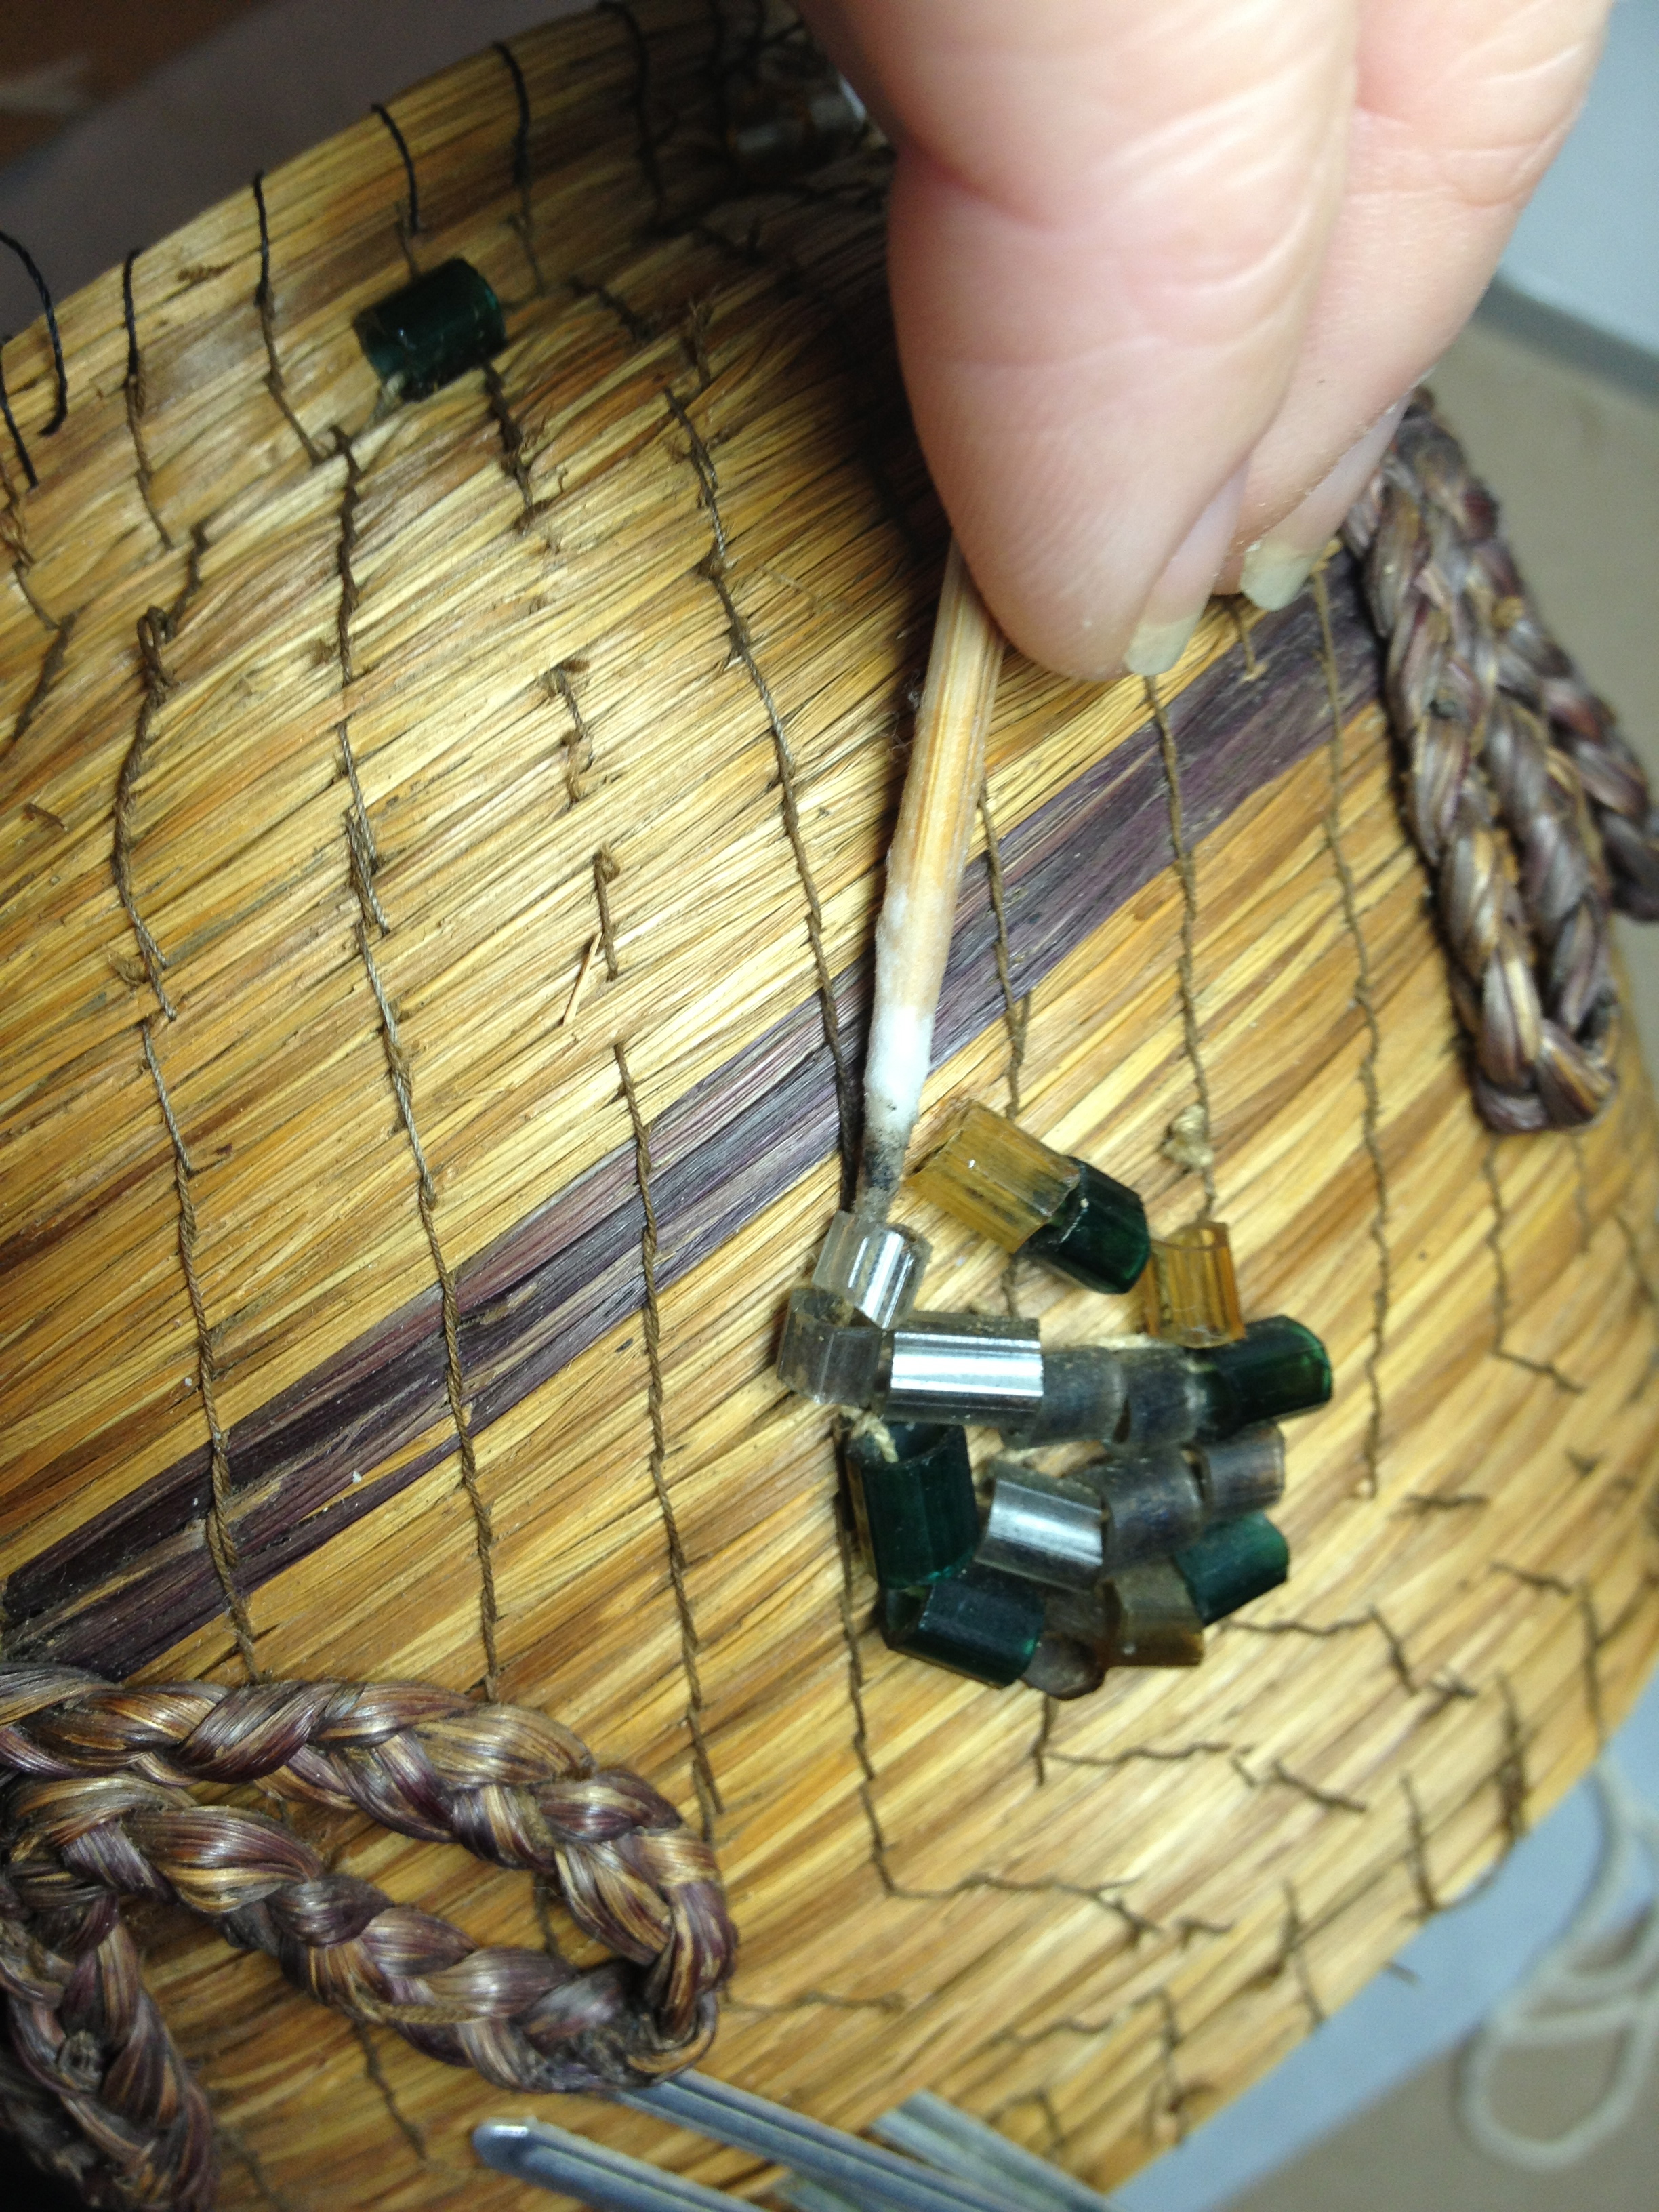 Native American sweetgrass basket with beads cleaned during conservation by Spicer Art Conservation, expert care of historic and antique objects and artifacts.